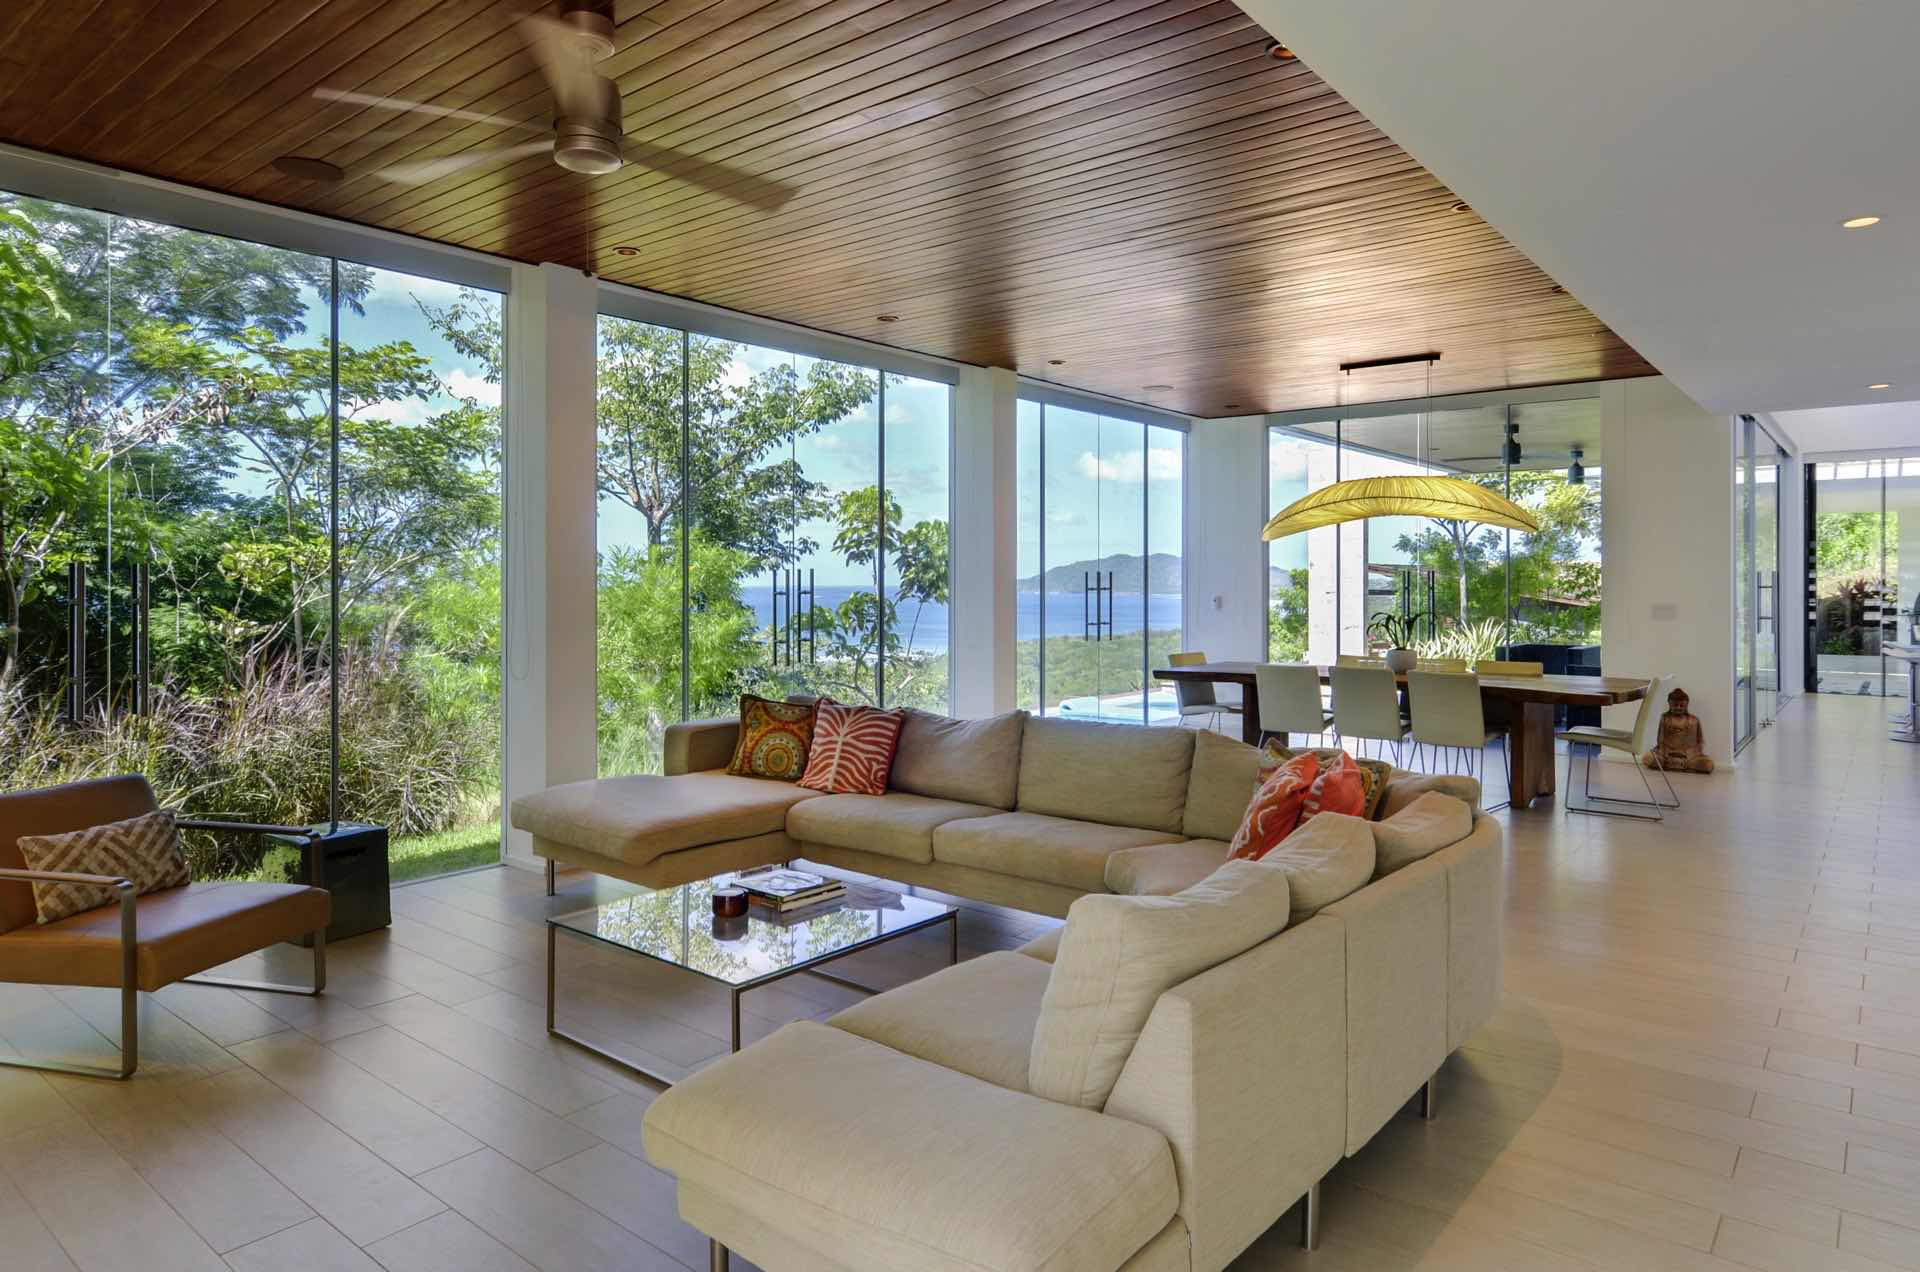 Floor-to-ceiling windows are equipped with black-out blinds